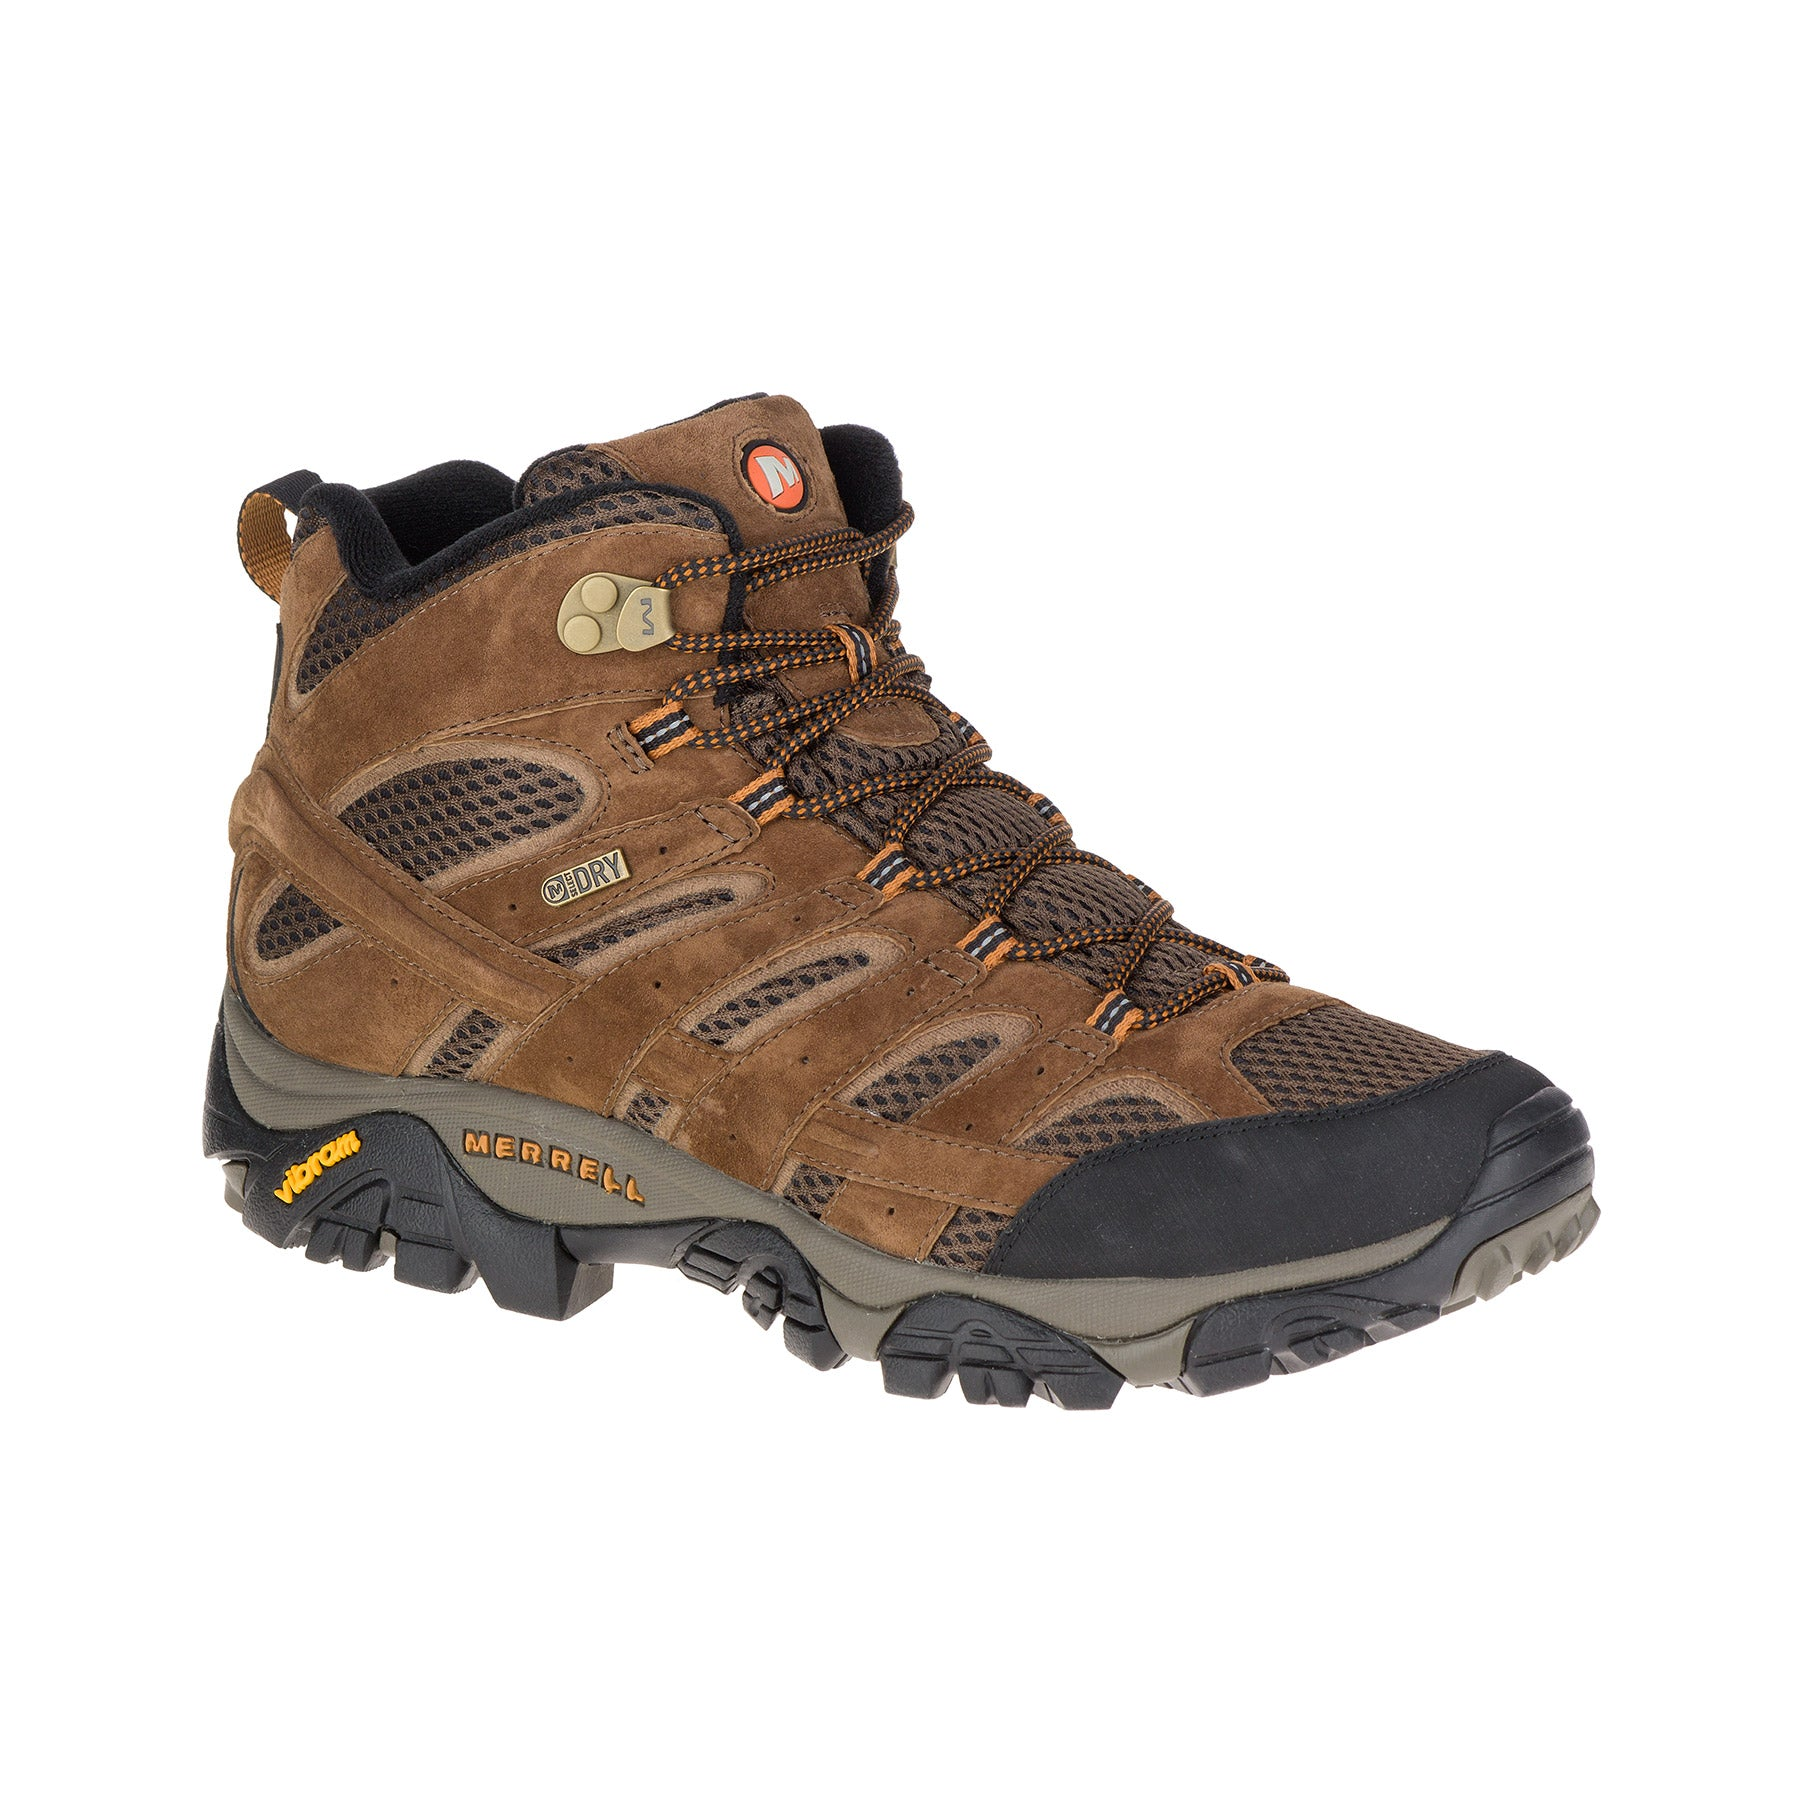 merrell moab 2 mid waterproof hiking boot mens side view in color brown